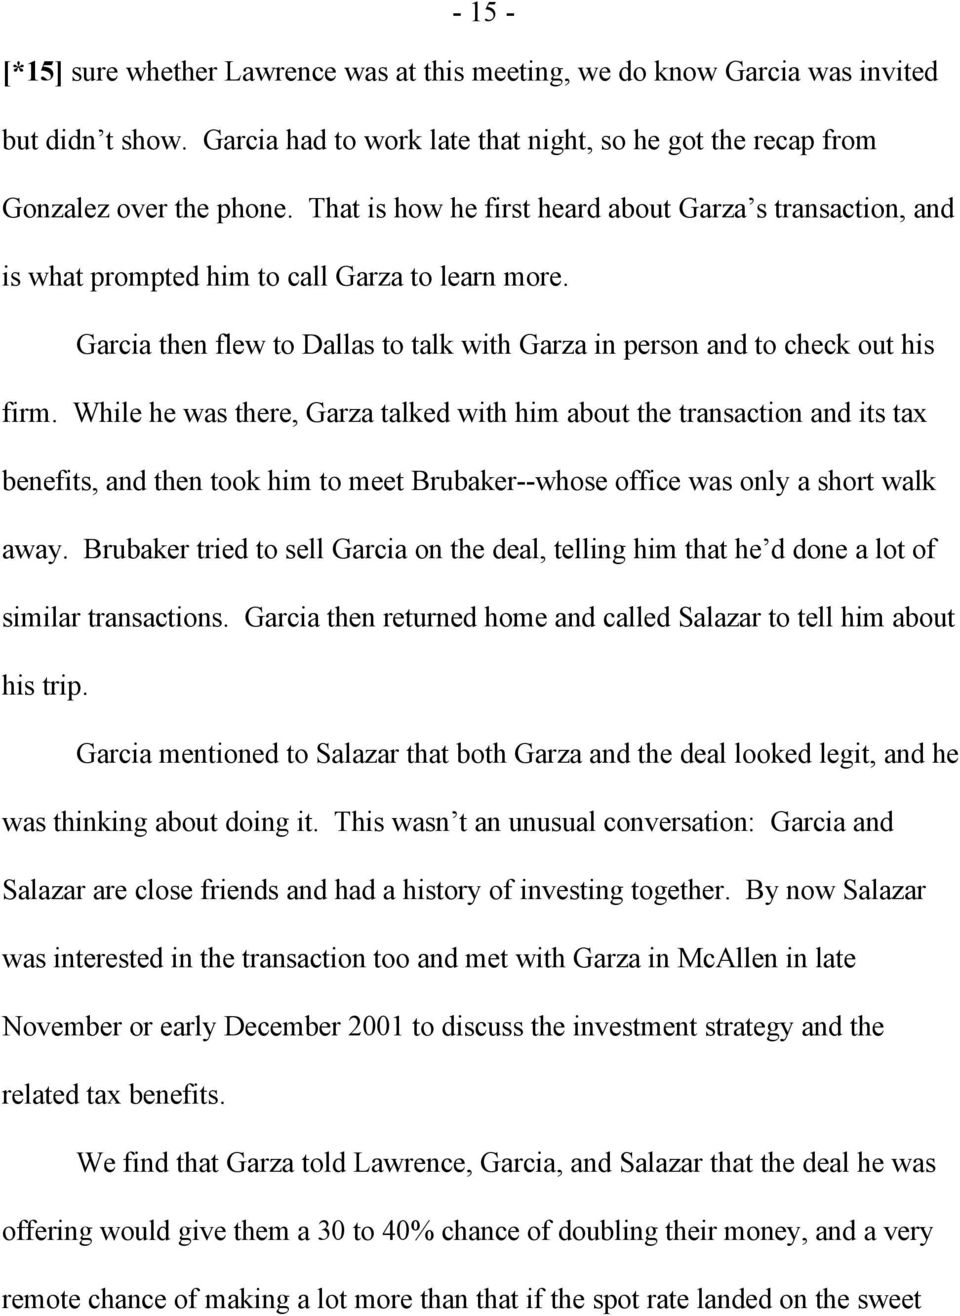 While he was there, Garza talked with him about the transaction and its tax benefits, and then took him to meet Brubaker--whose office was only a short walk away.